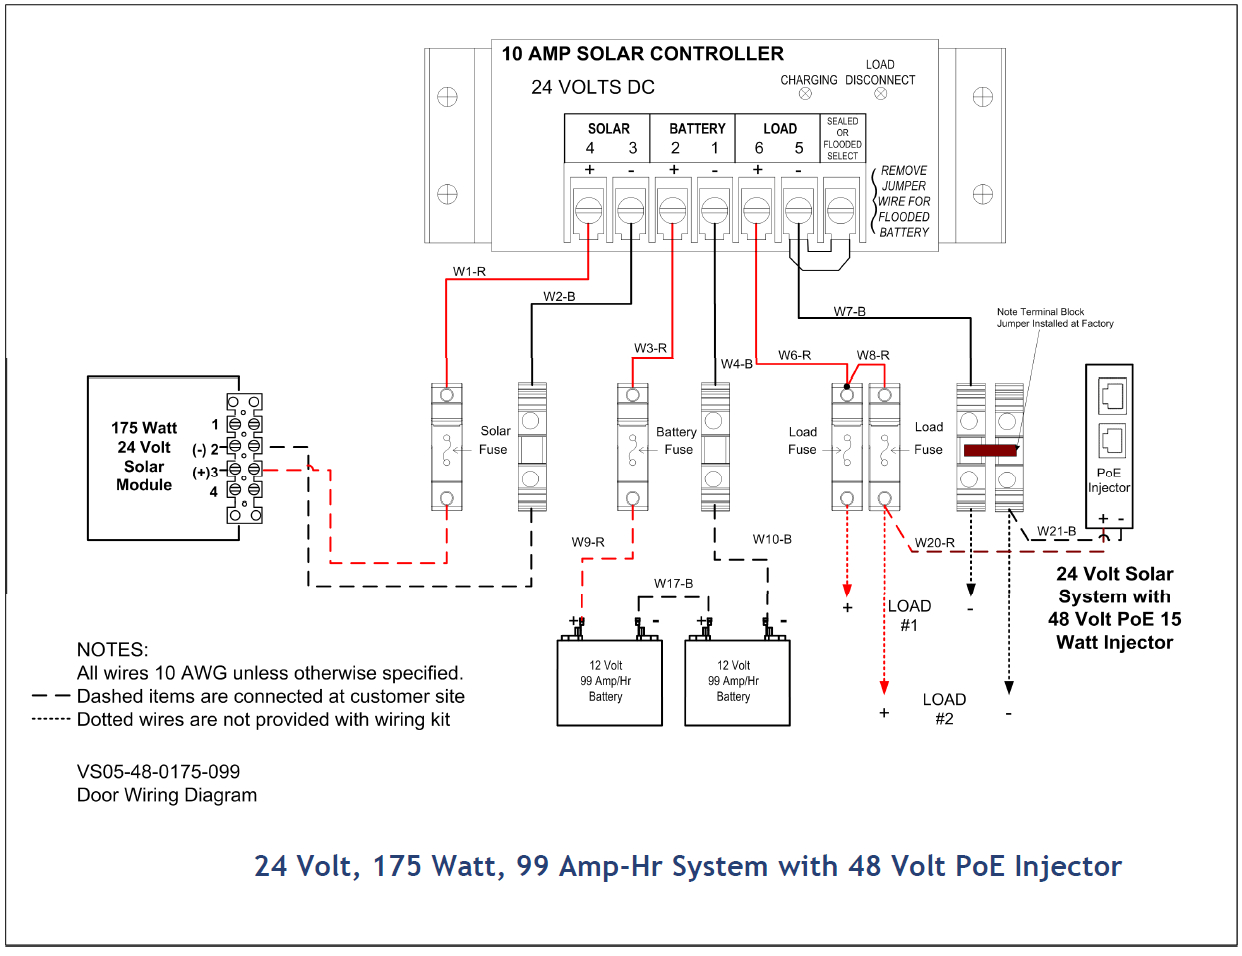 12 Volt Dc To 24 Volt Dc Wiring Diagram | Wiring Library - 24 Volt Wiring Diagram